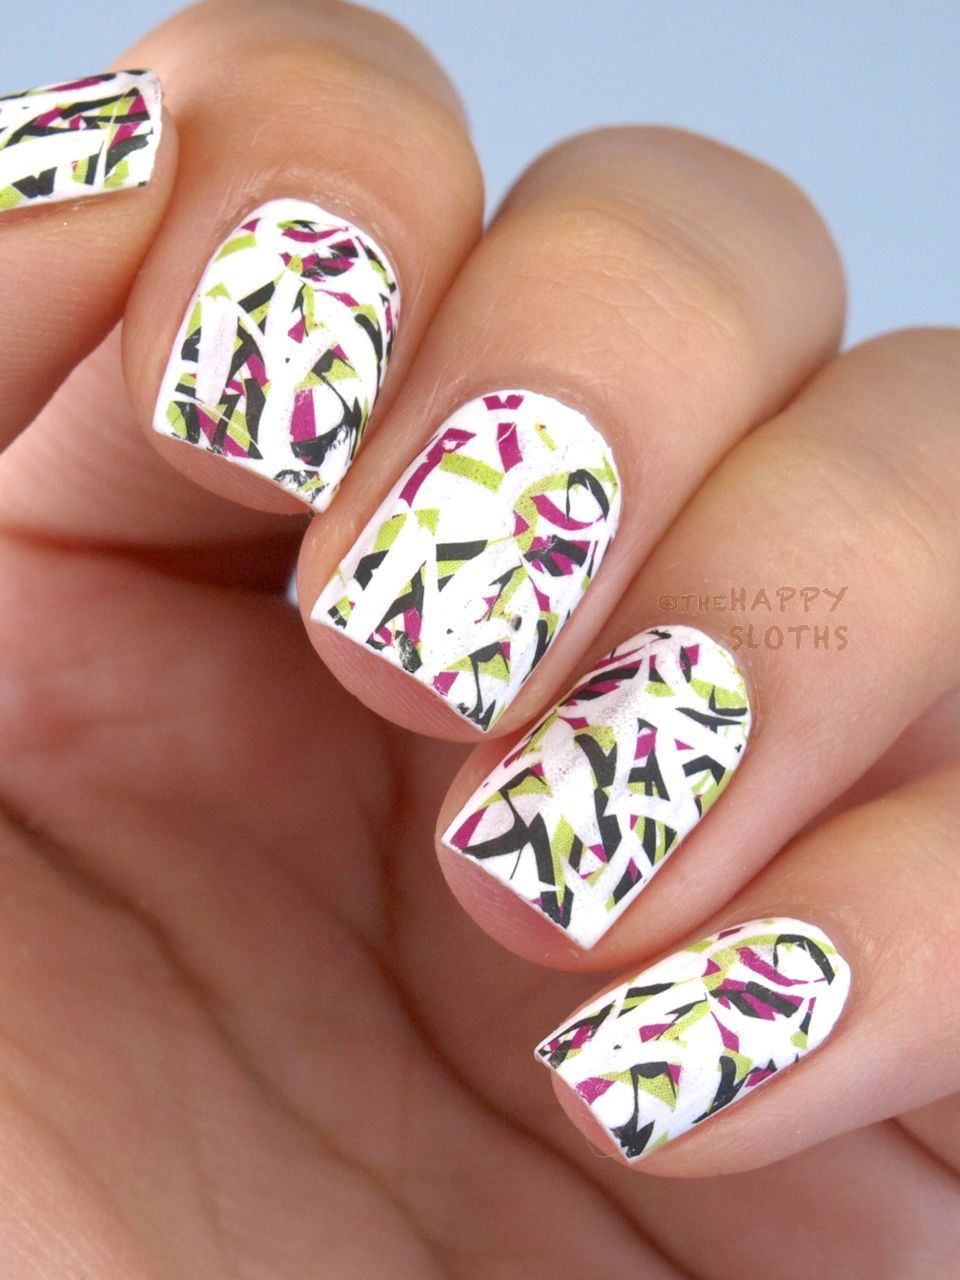 Cni nailart manicure nail desige hand arms cniart summer ...